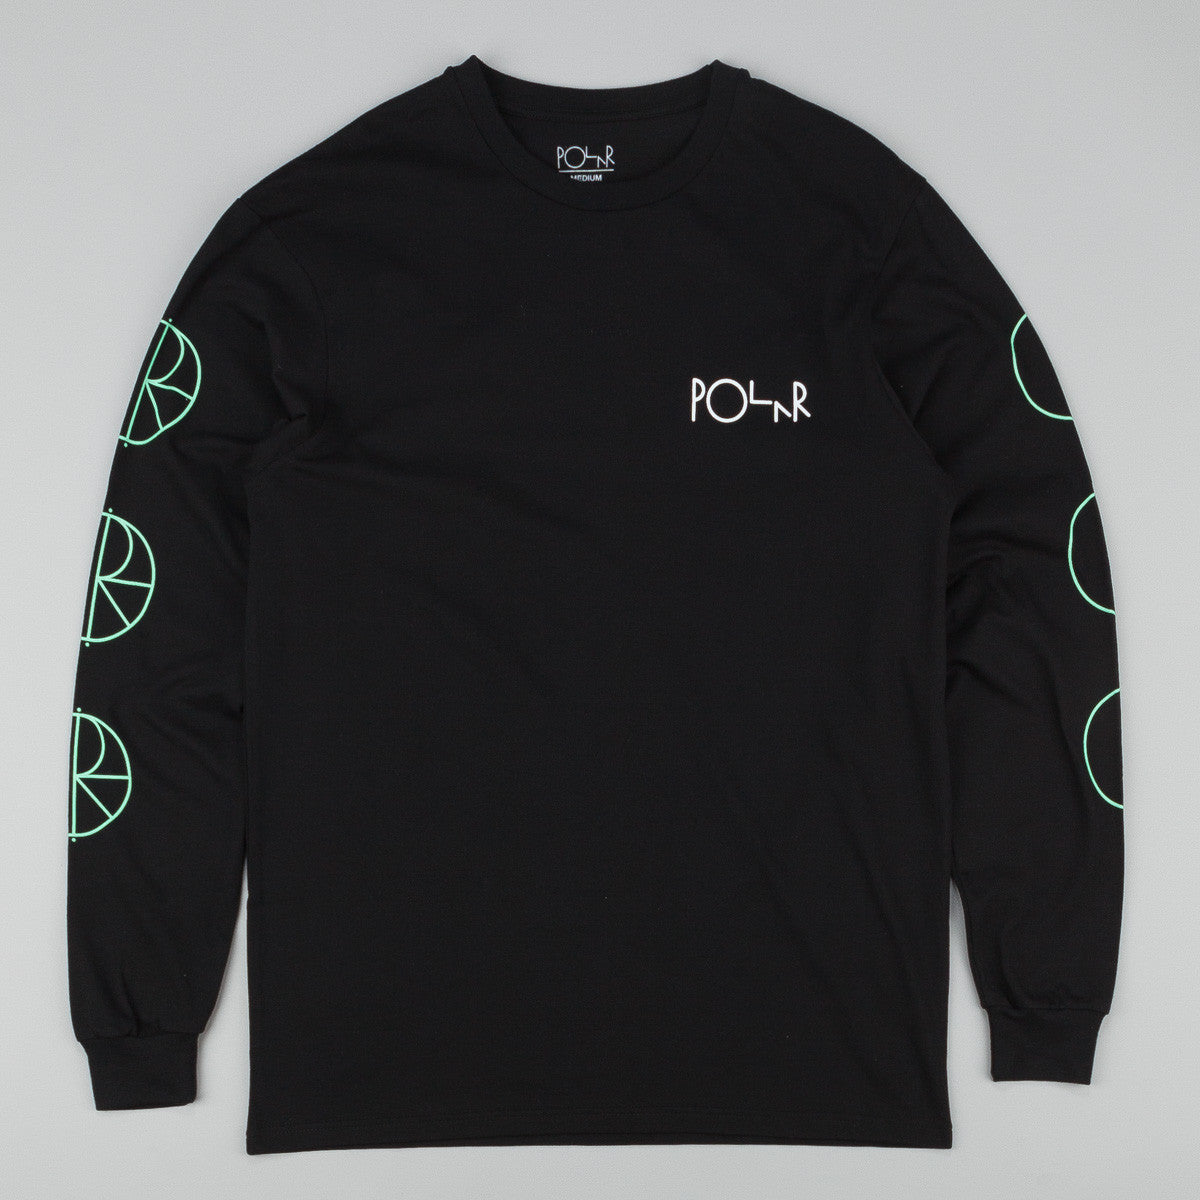 Polar Racing Longsleeve T-Shirt - Black / Mint / White